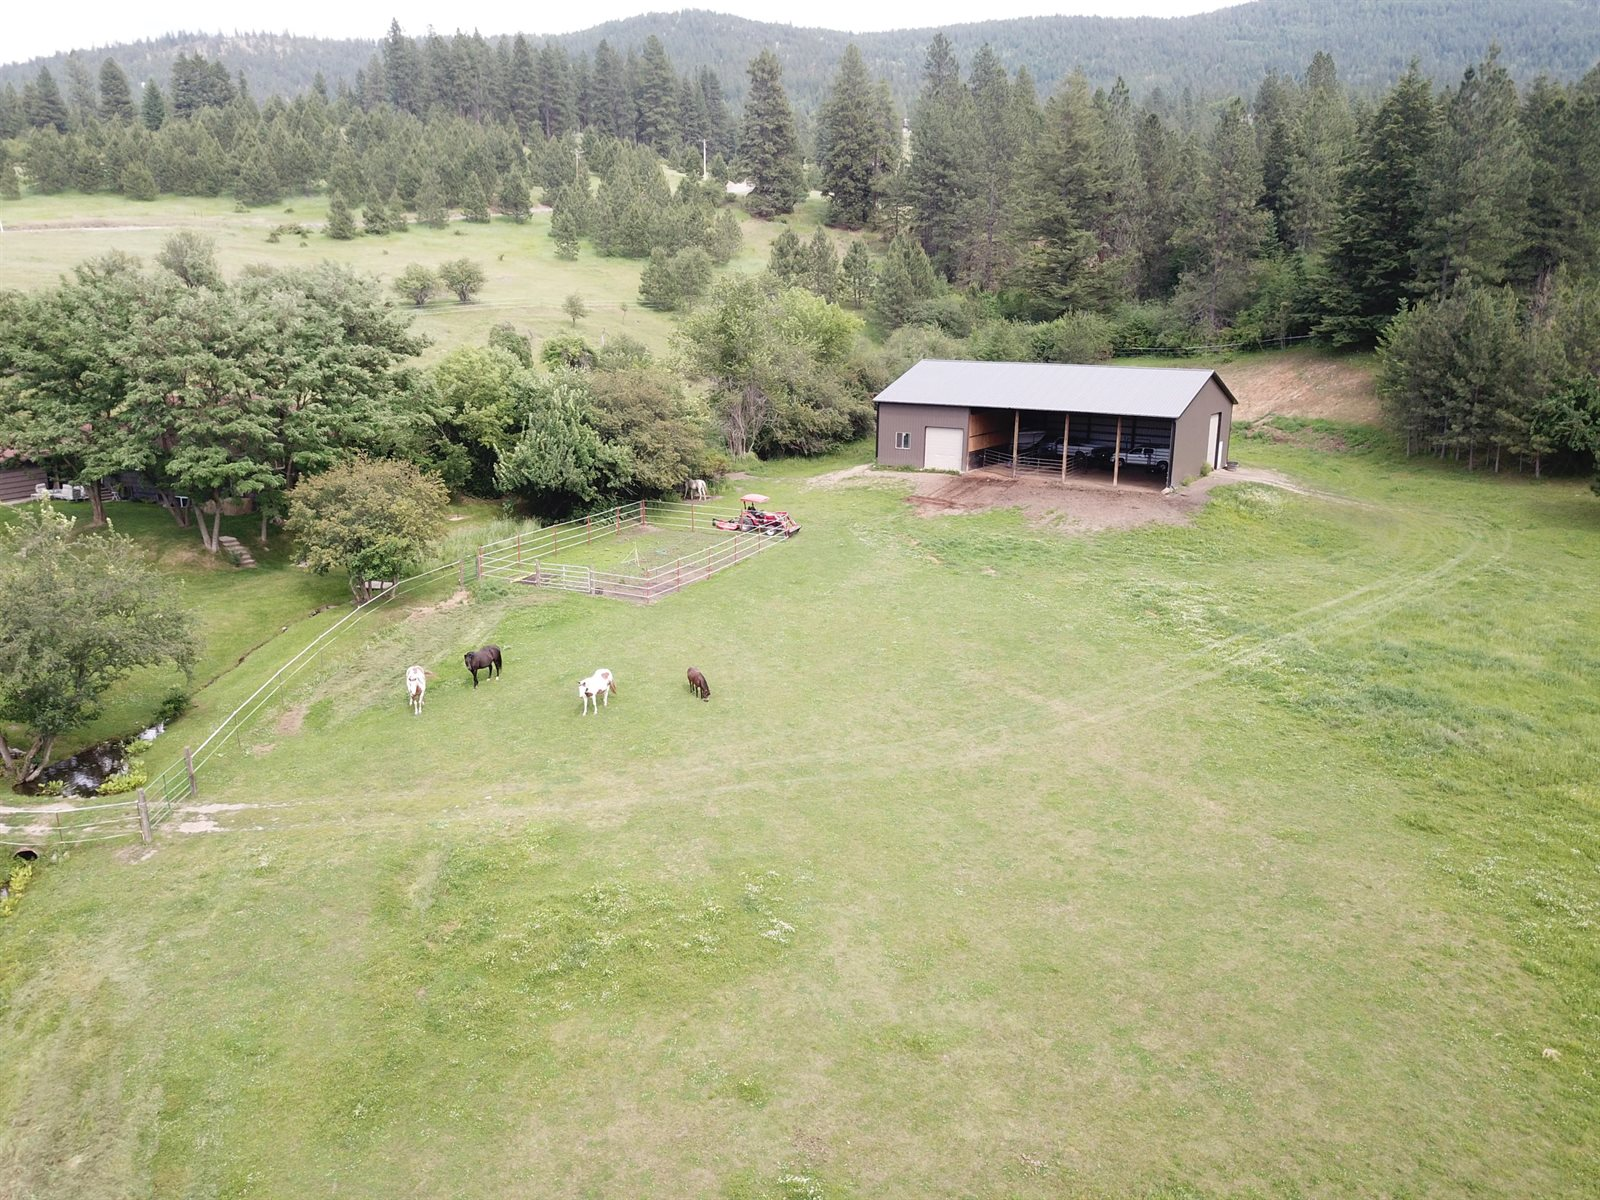 4644 South Stateline Rd, Post Falls, ID 83854